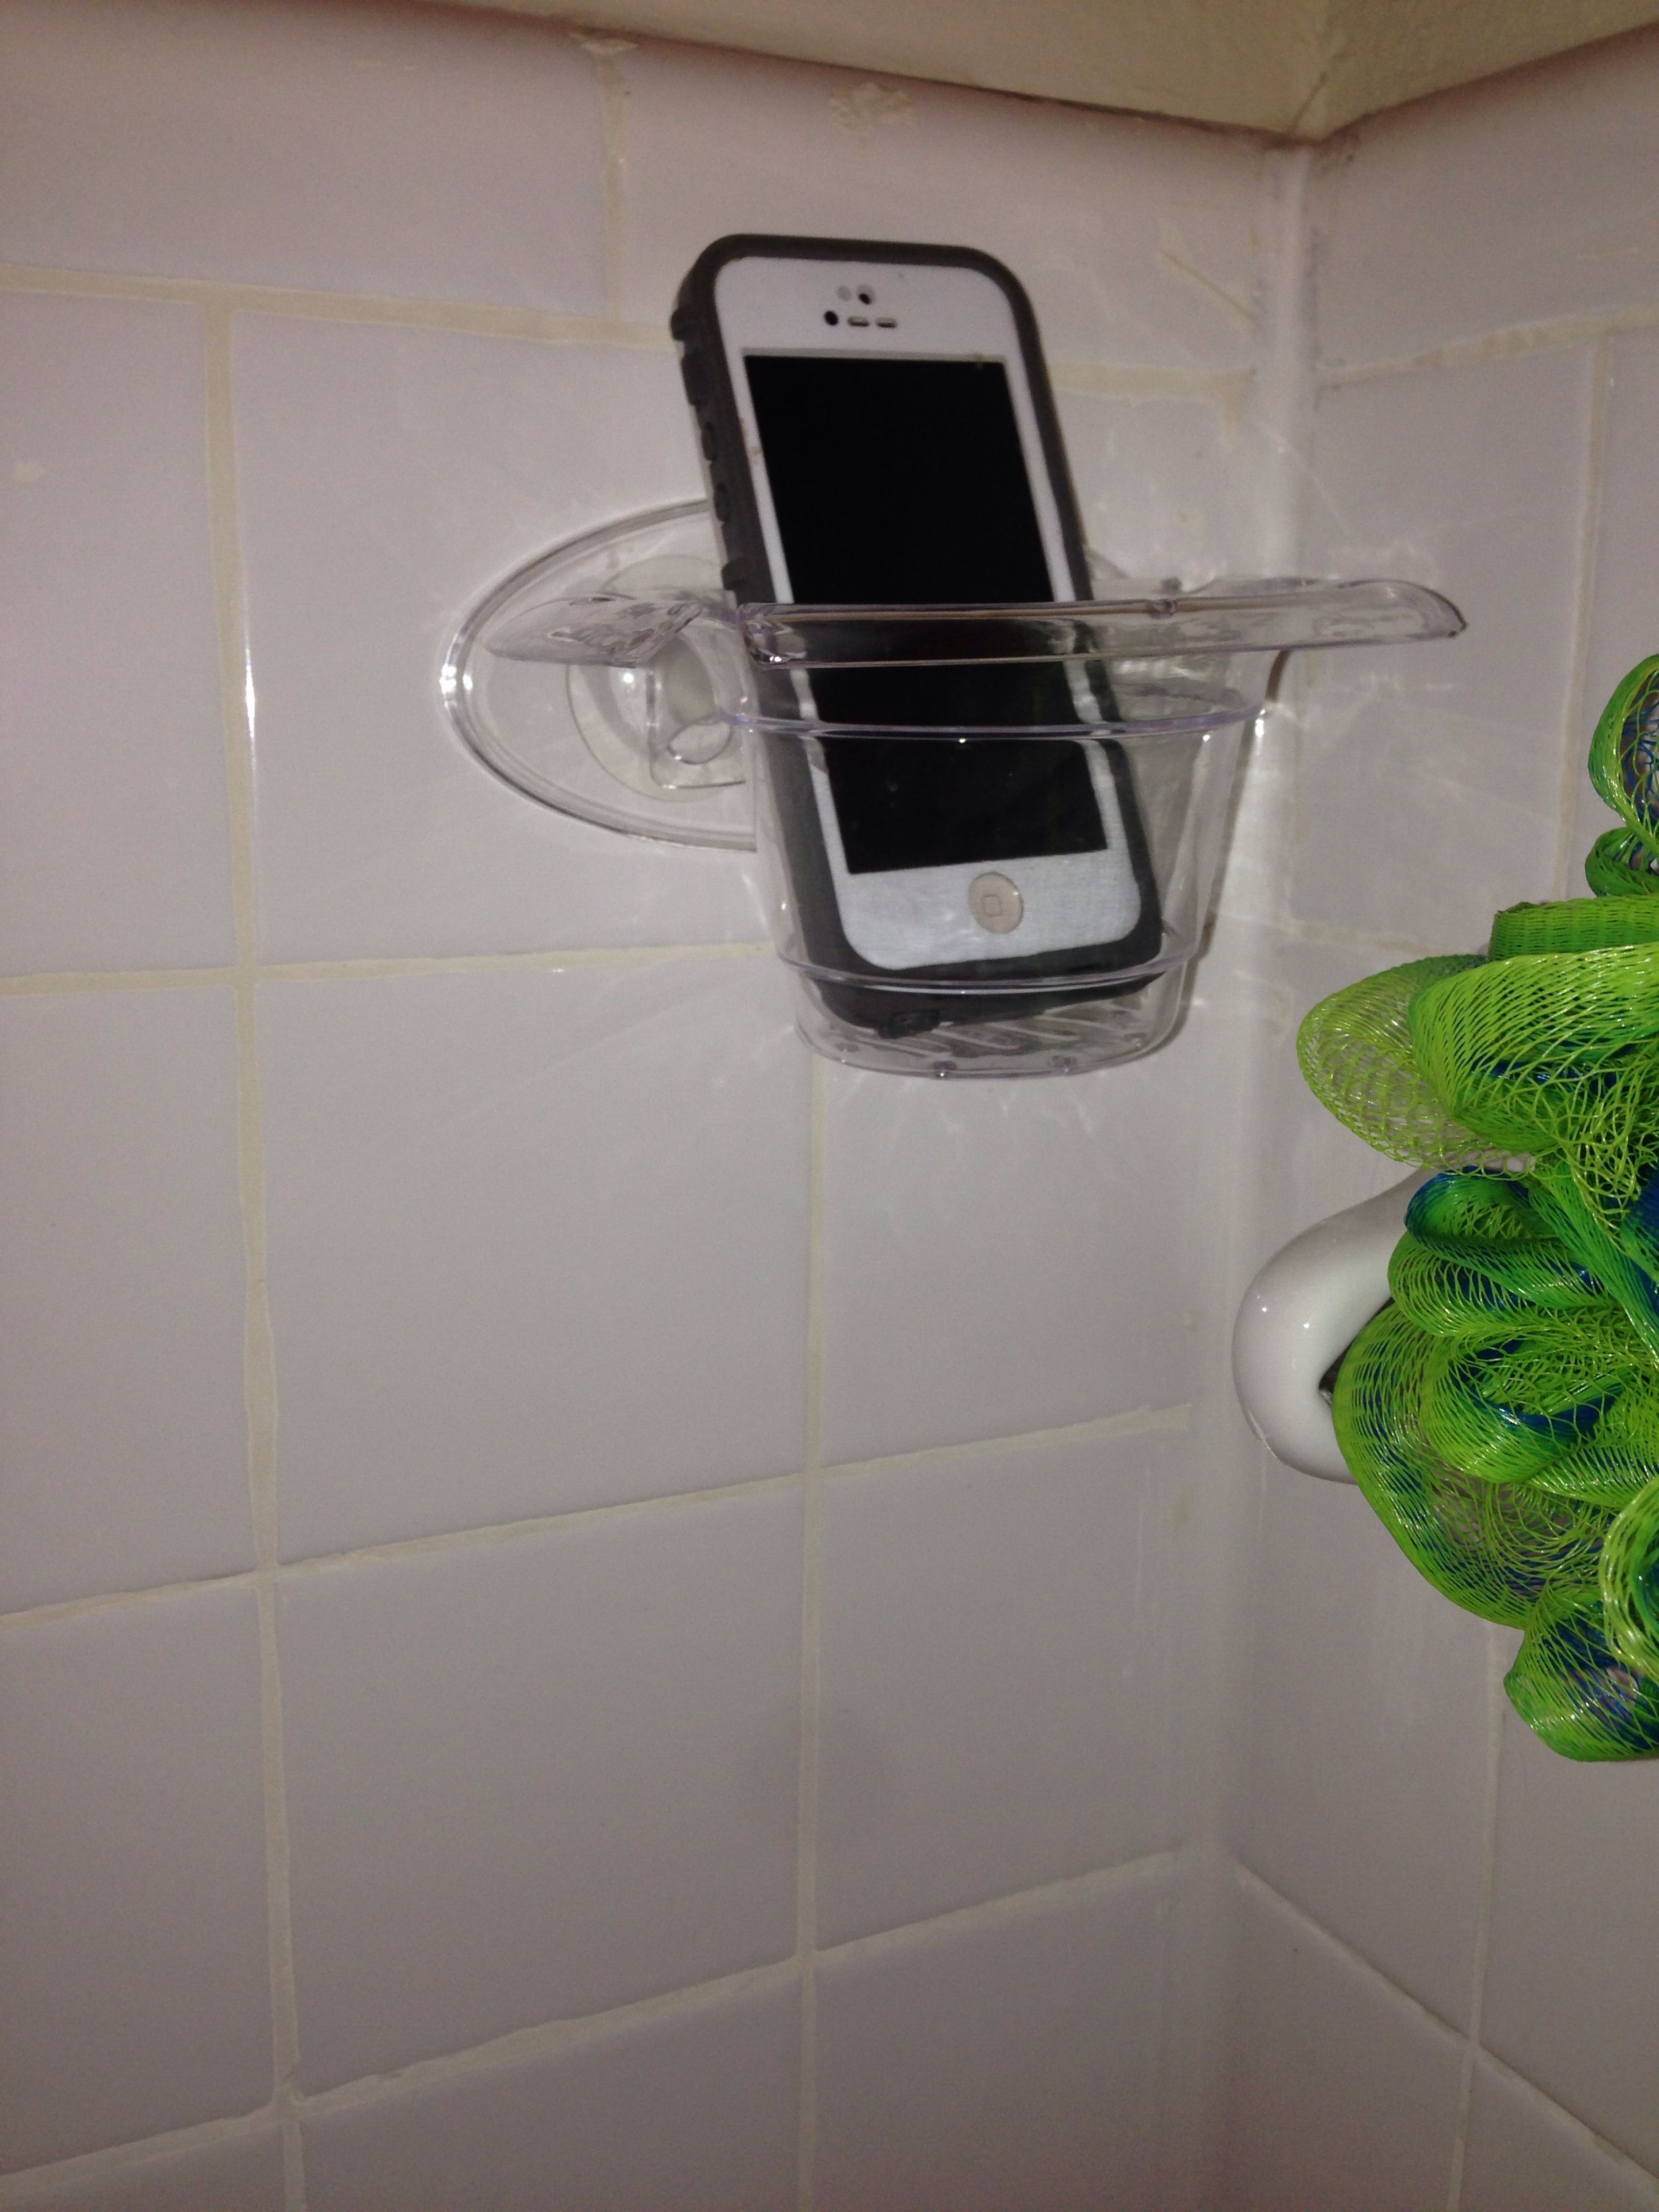 on sale 18361 d468e tree soap dish / phone holder amplifies sound, put at end of shower ...